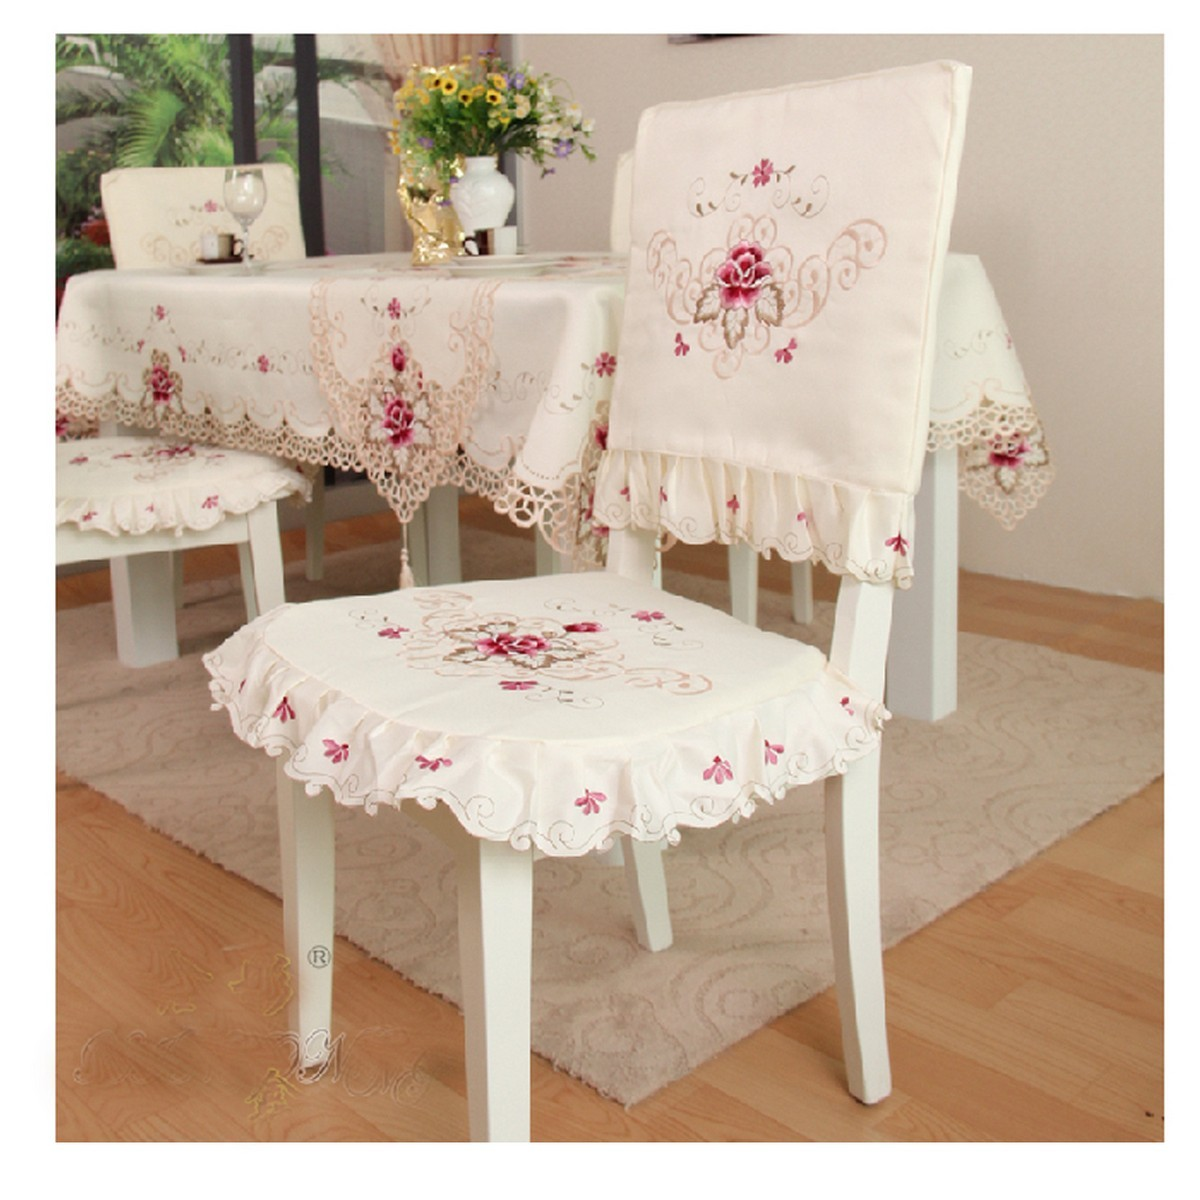 dining room chair covers on ebay tub ikea vintage flower embroidered tie seat cushion ruffle pad